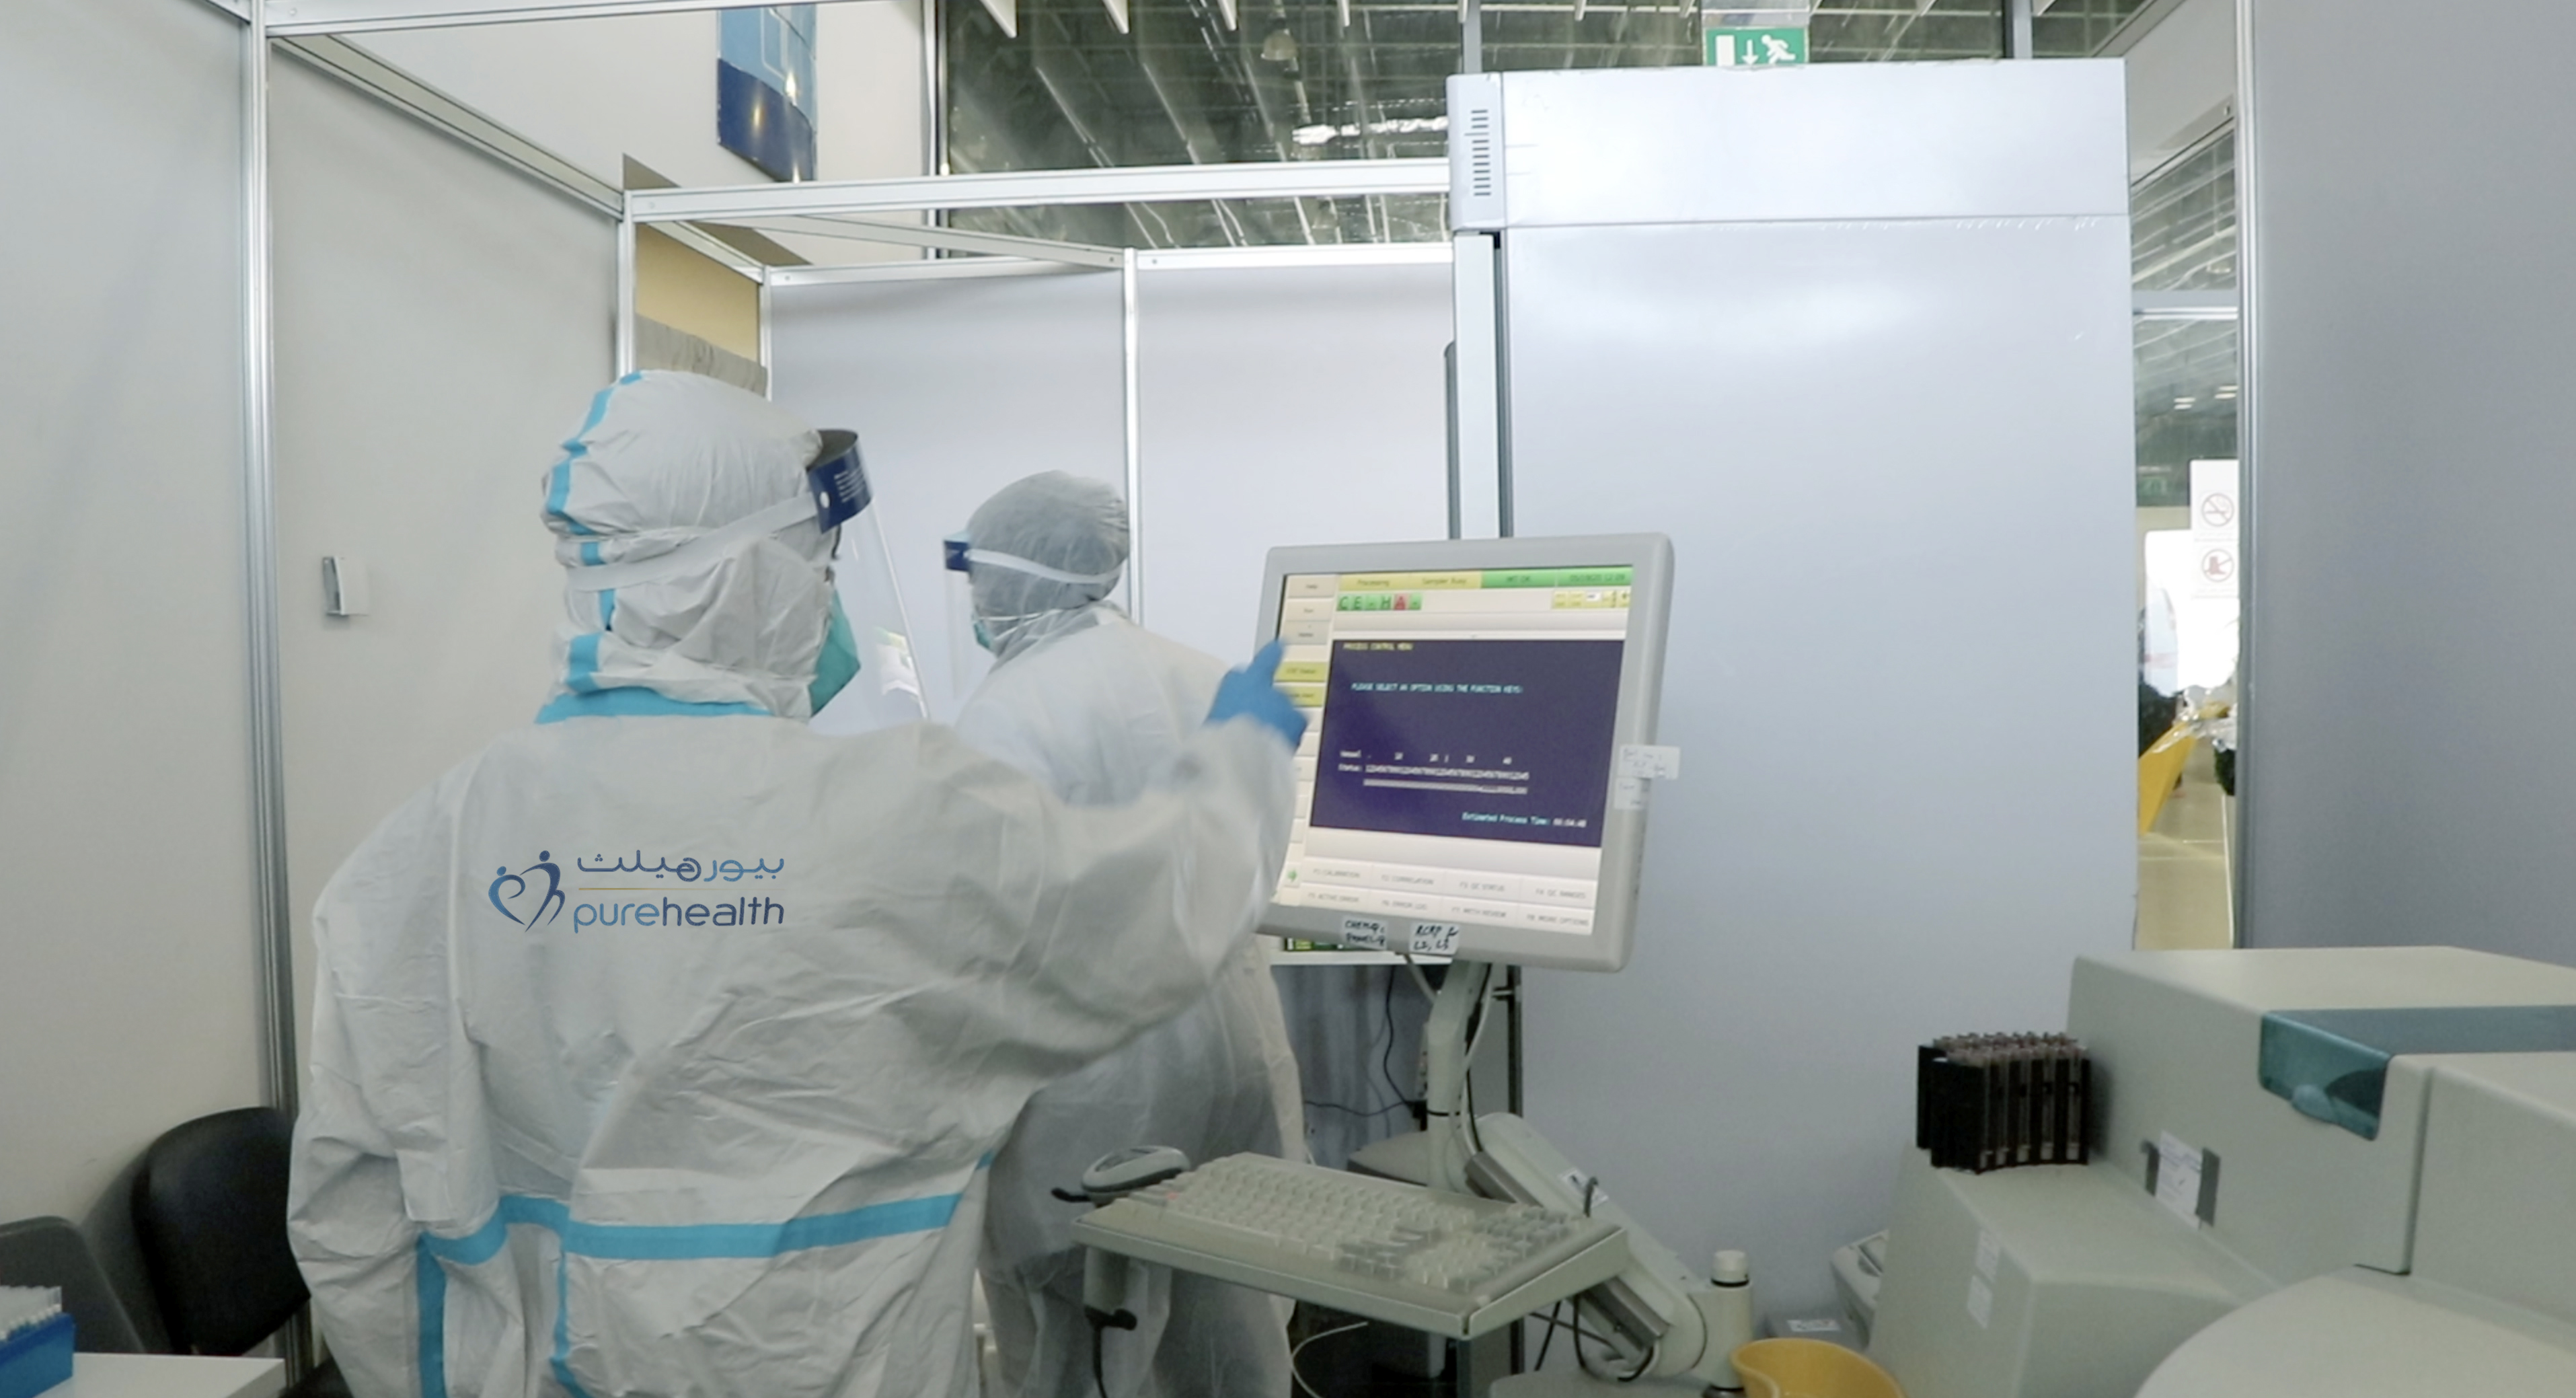 Pure Health Launches Covid-19 Field Laboratory